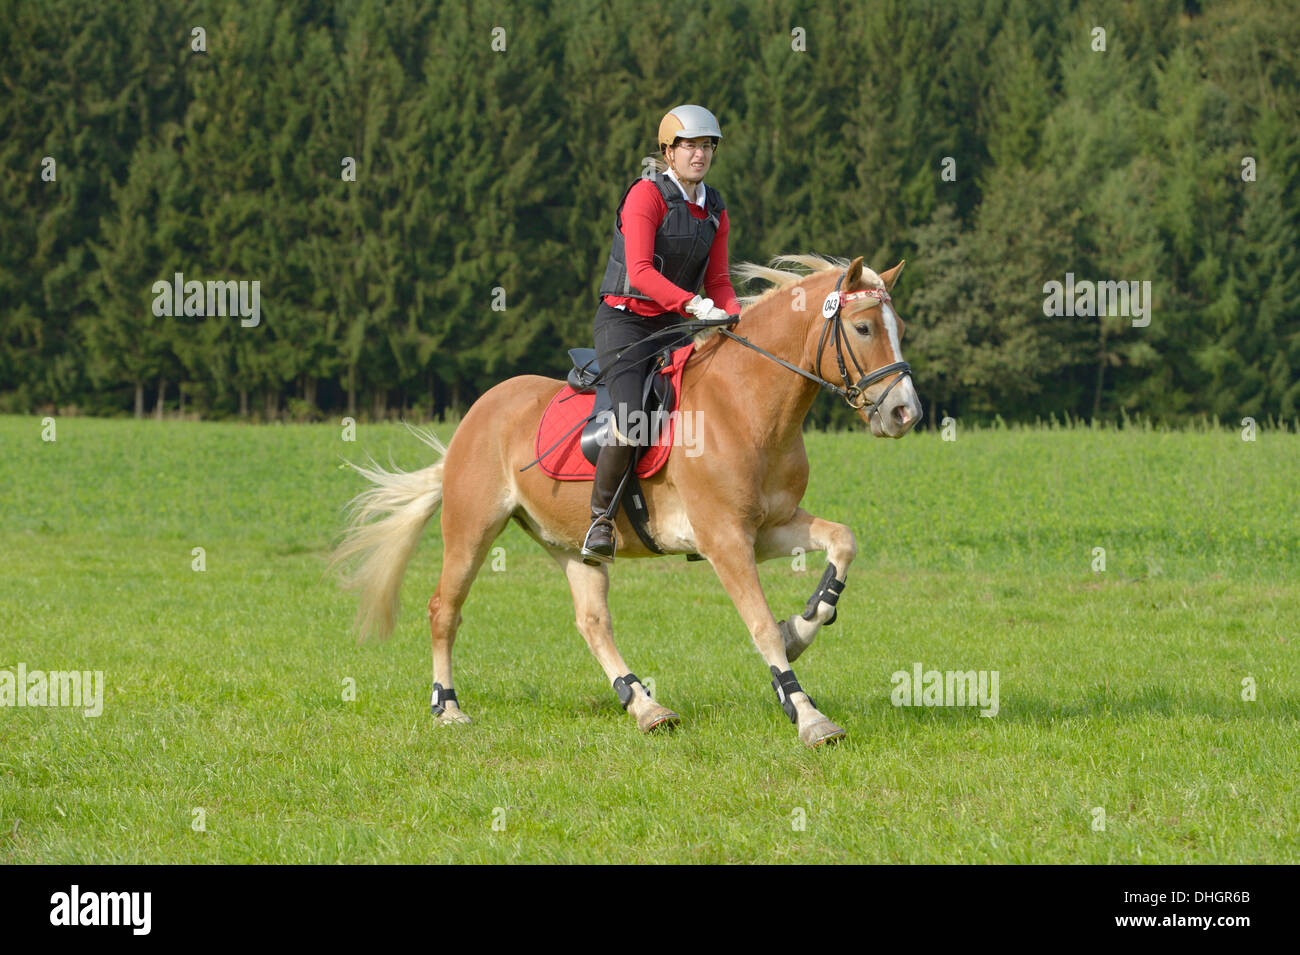 Rider on Haflinger horse during an entry level cross country competition - Stock Image